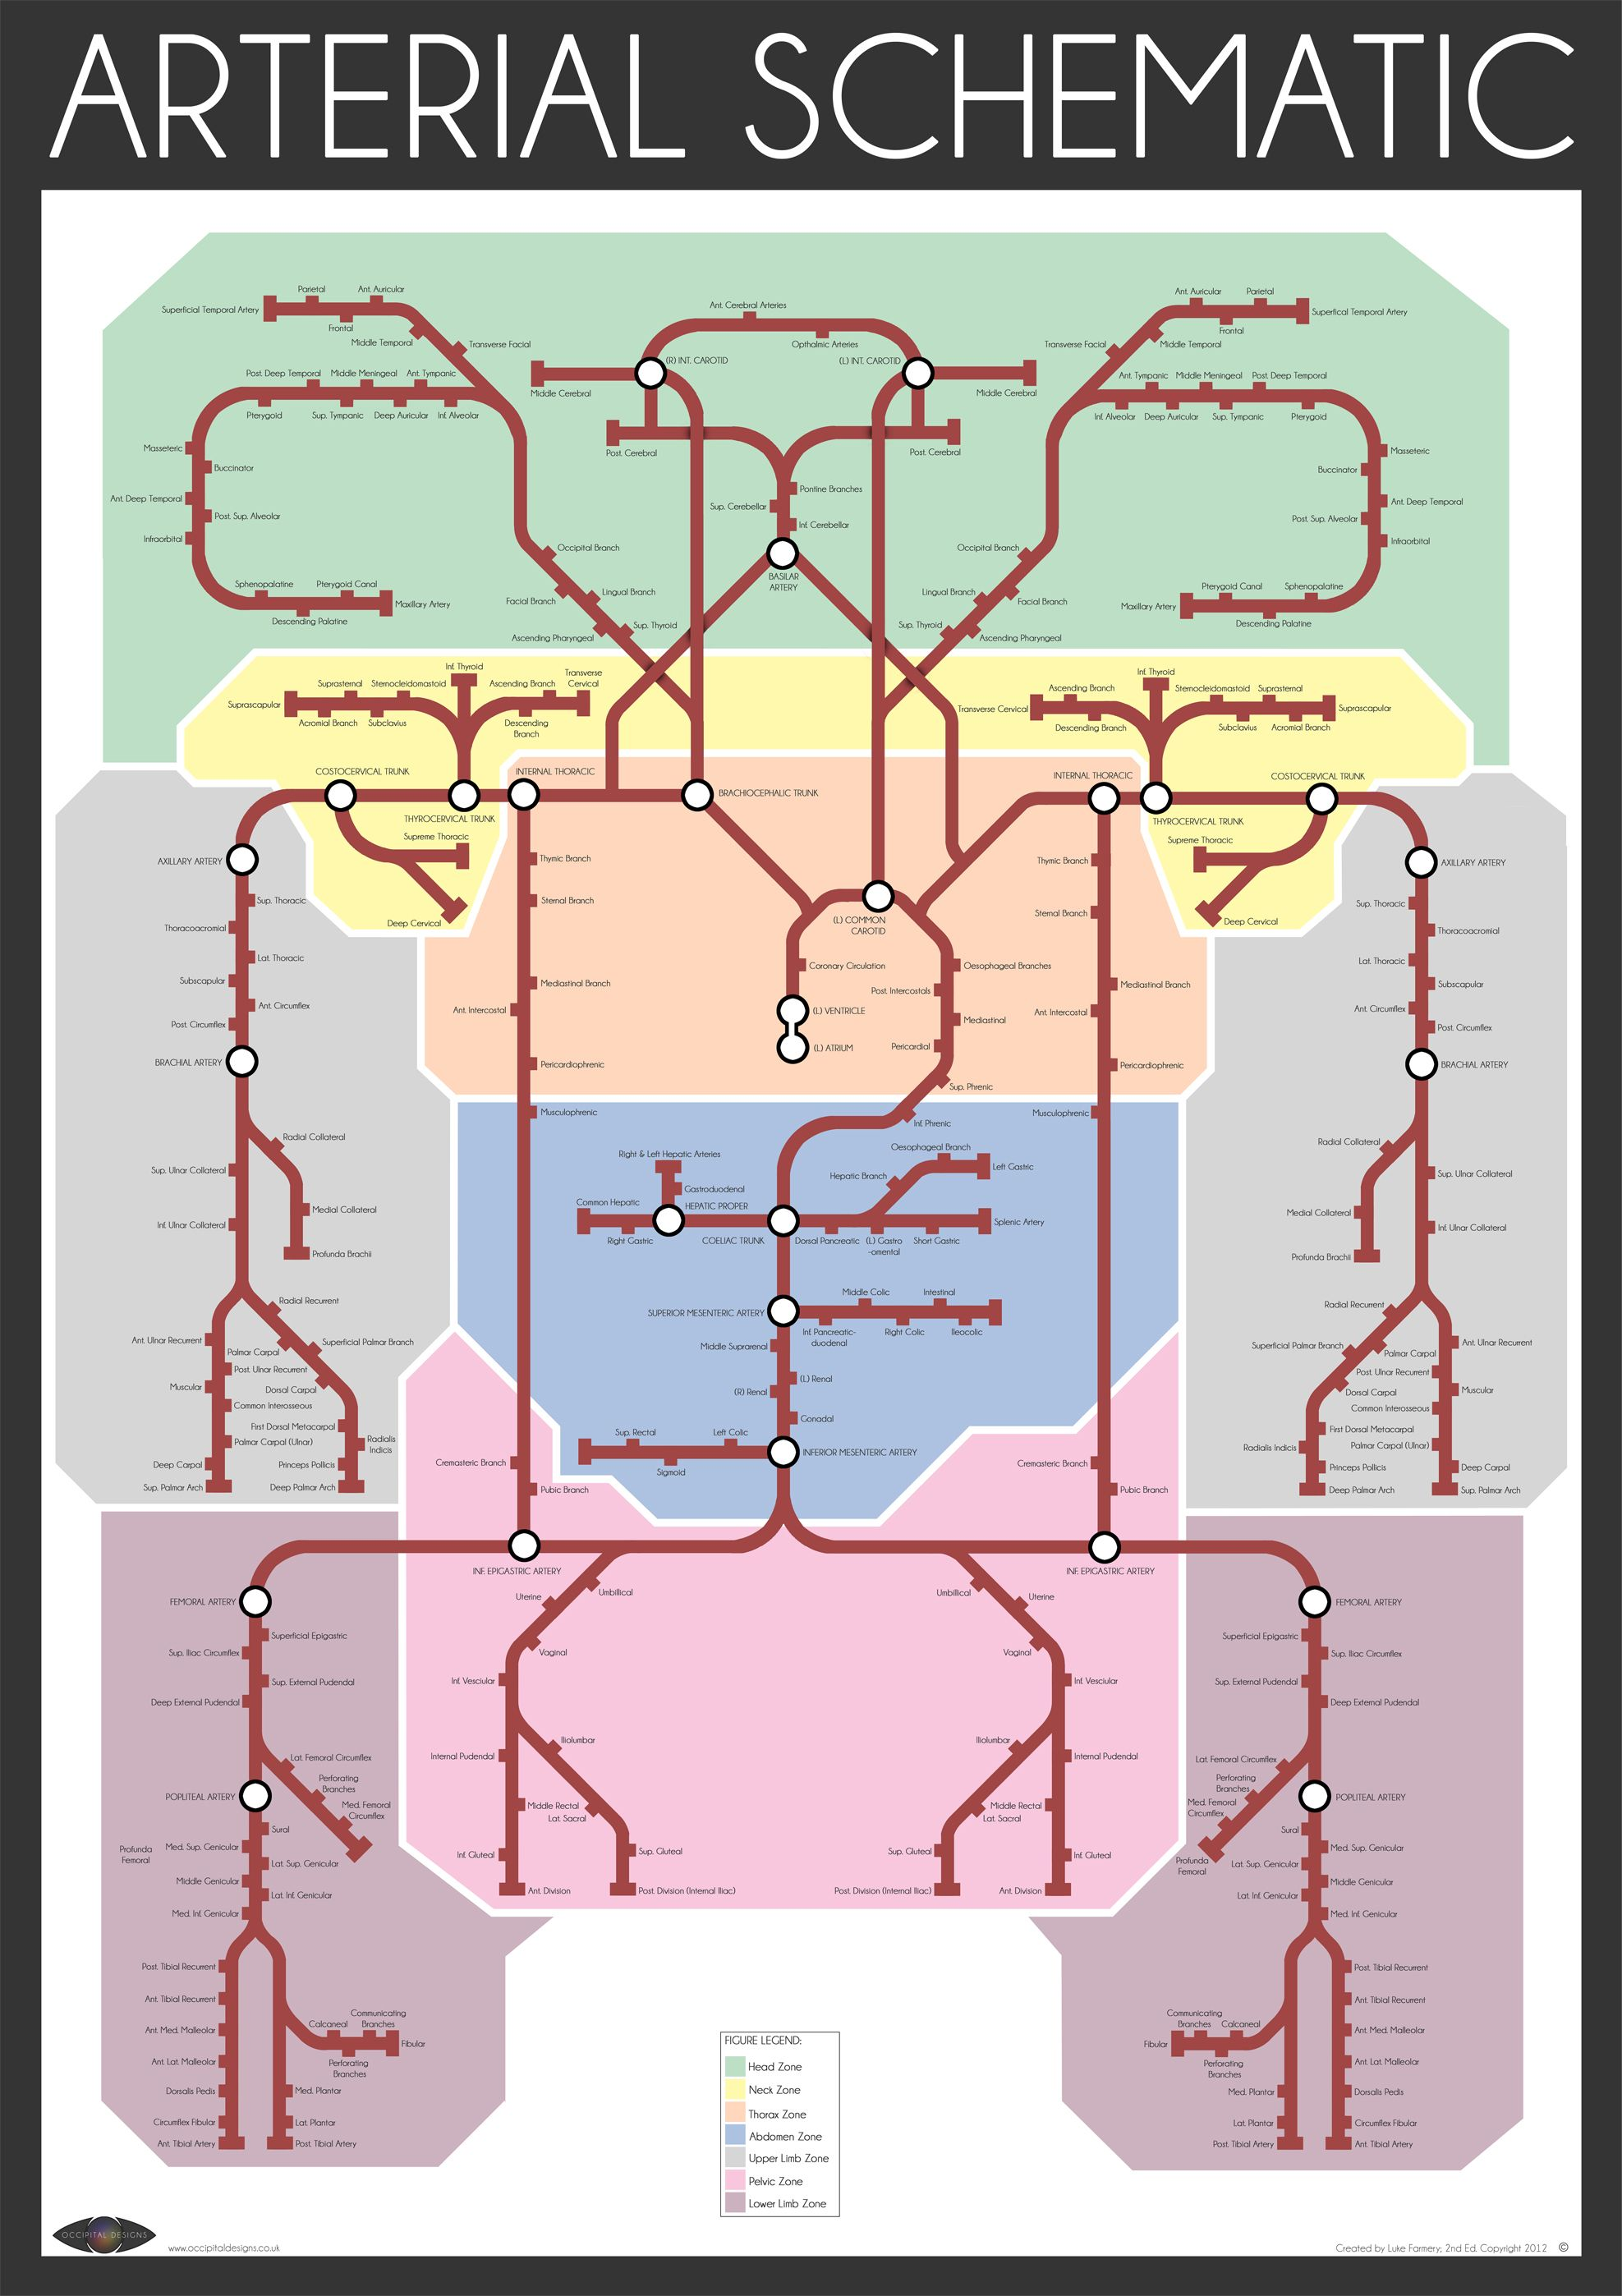 The Arterial Schematic Represents The Intricate Three Dimensional